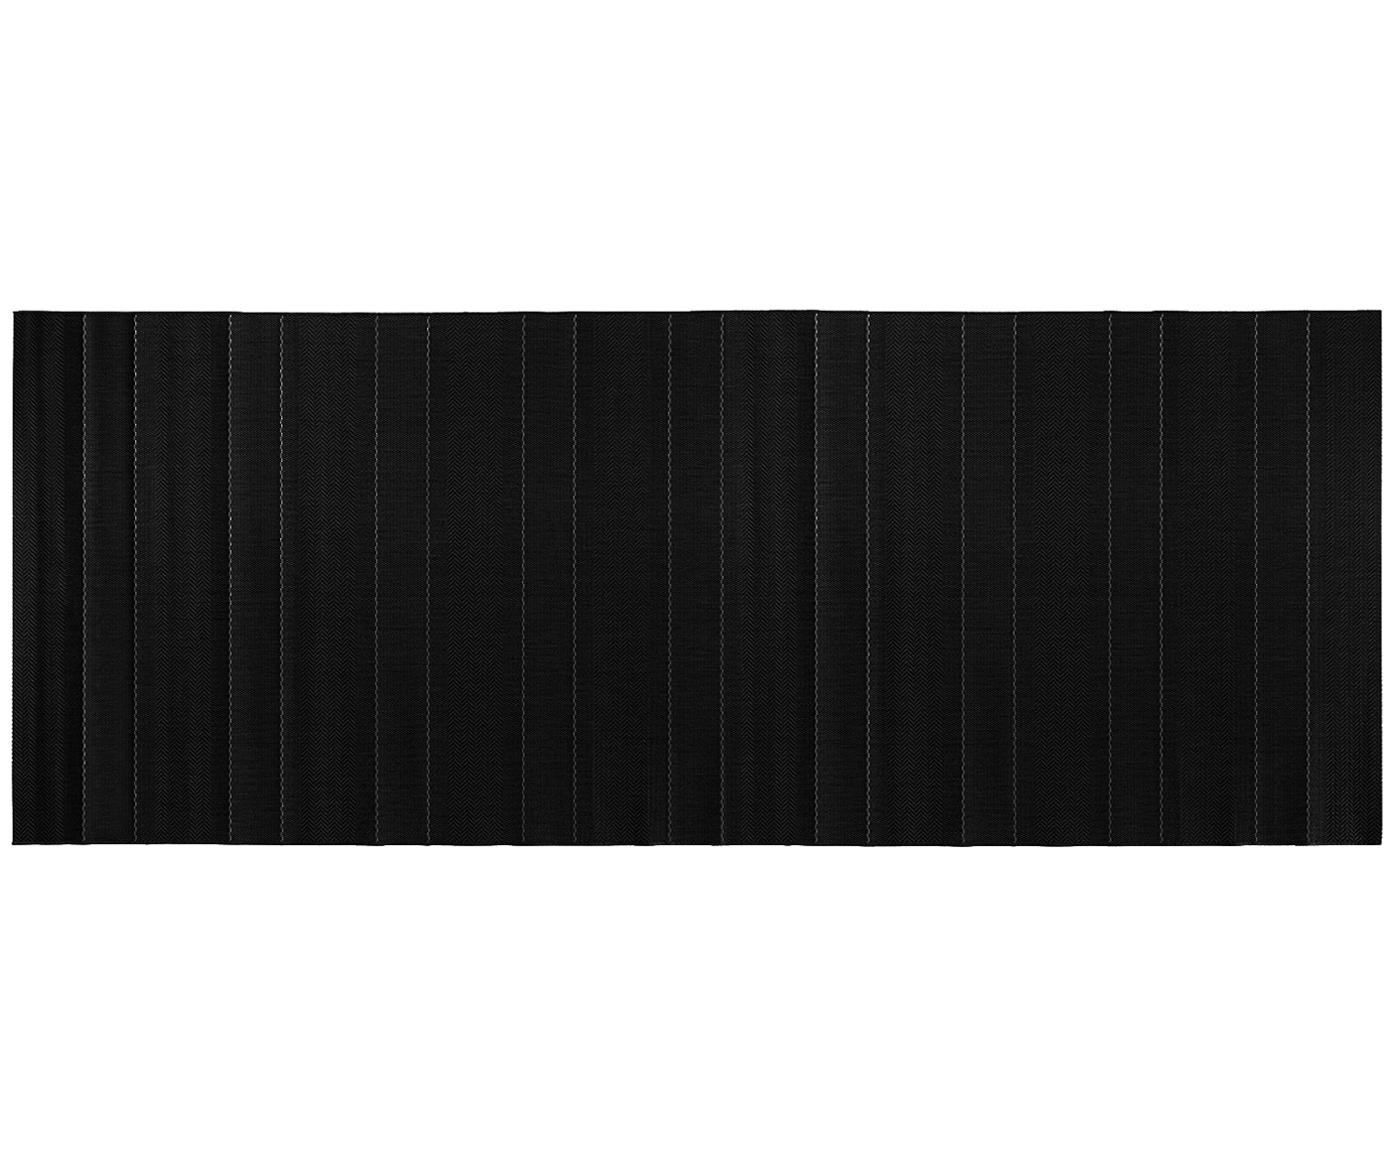 In- & Outdoor-Läufer Sunshine in Schwarz, Schwarz, Creme, 80 x 200 cm